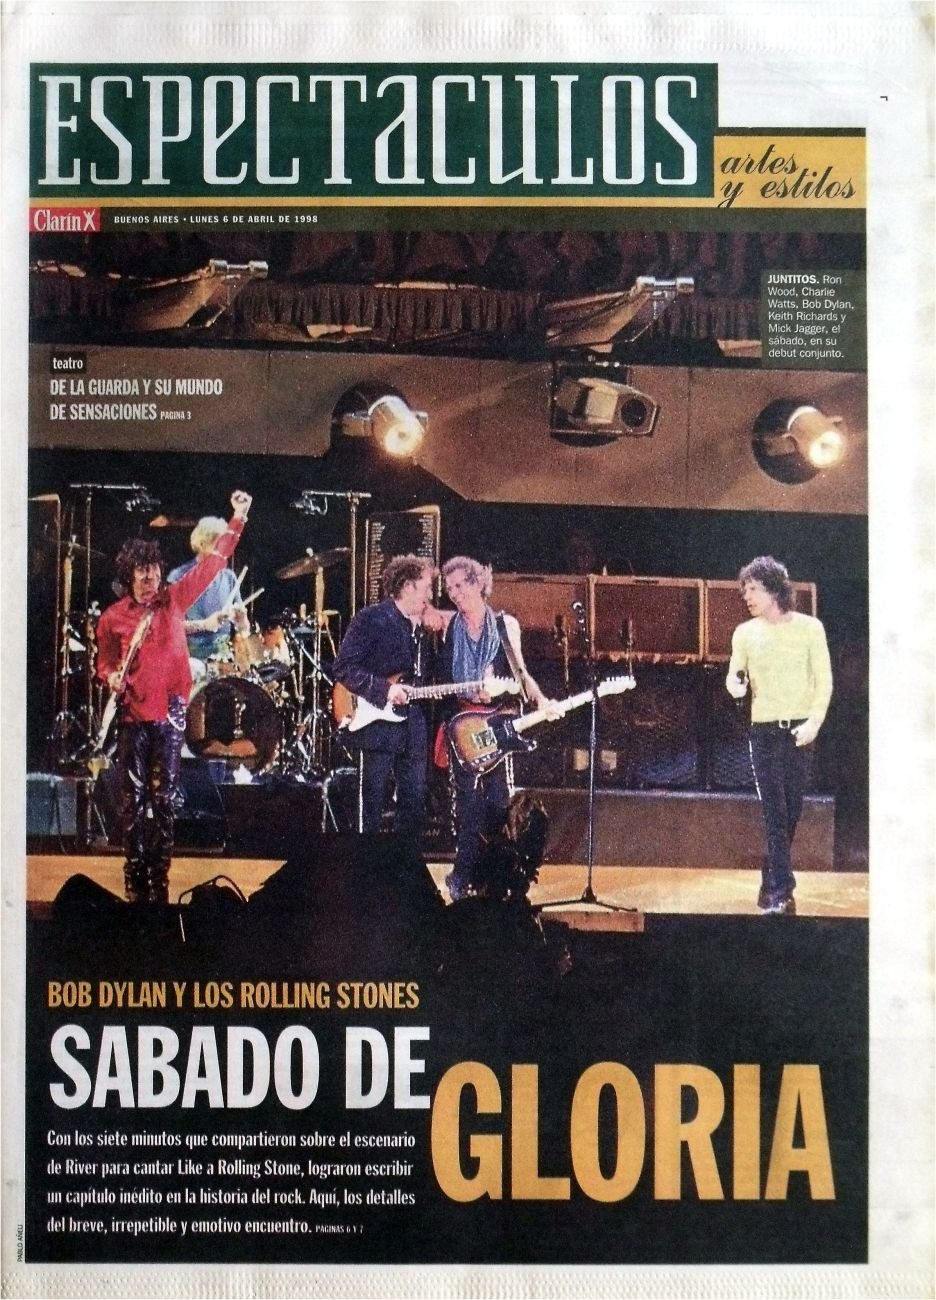 clarin argentina espectaculos 6 April 1998 supplement Bob Dylan cover story